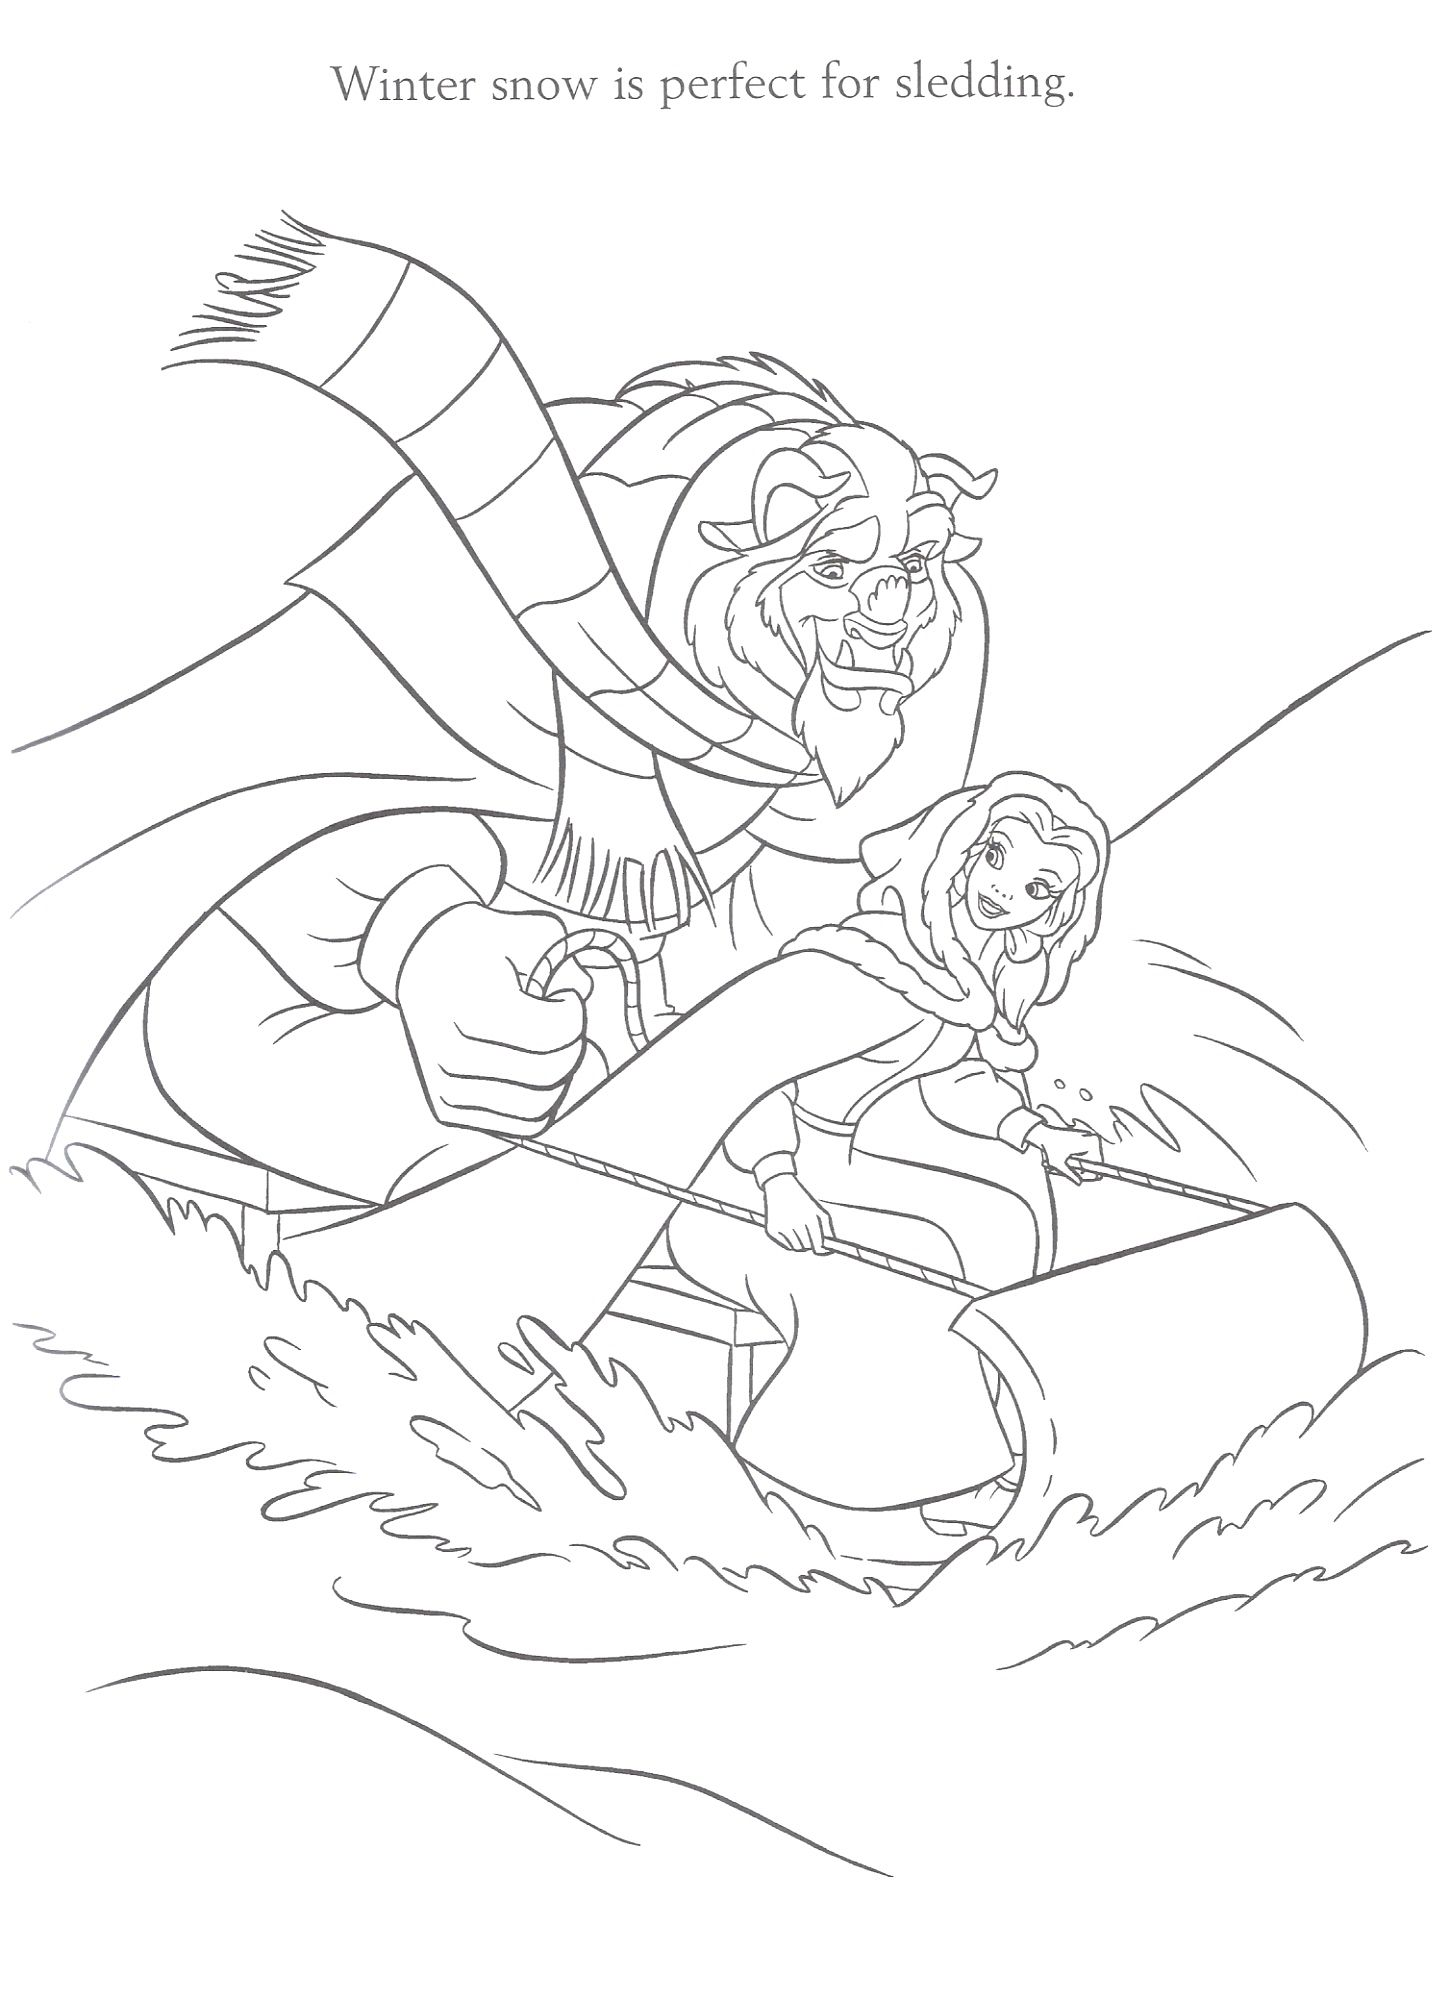 Image from http://disney-stationary.com/coloring-book/Beauty-Beast/beauty-beast-snowsled.jpg.